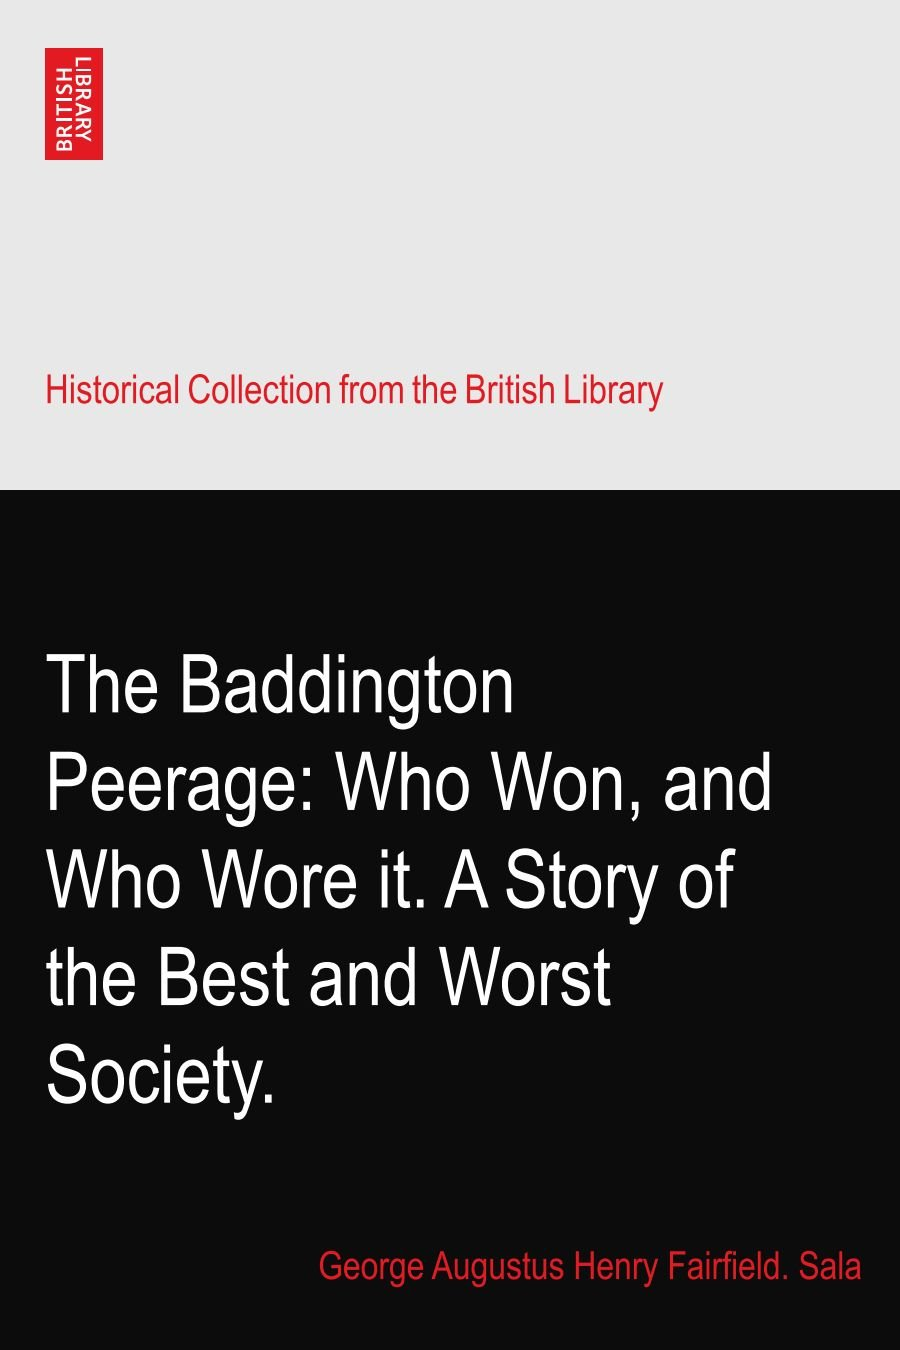 The Baddington Peerage: Who Won, and Who Wore it. A Story of the Best and Worst Society. PDF